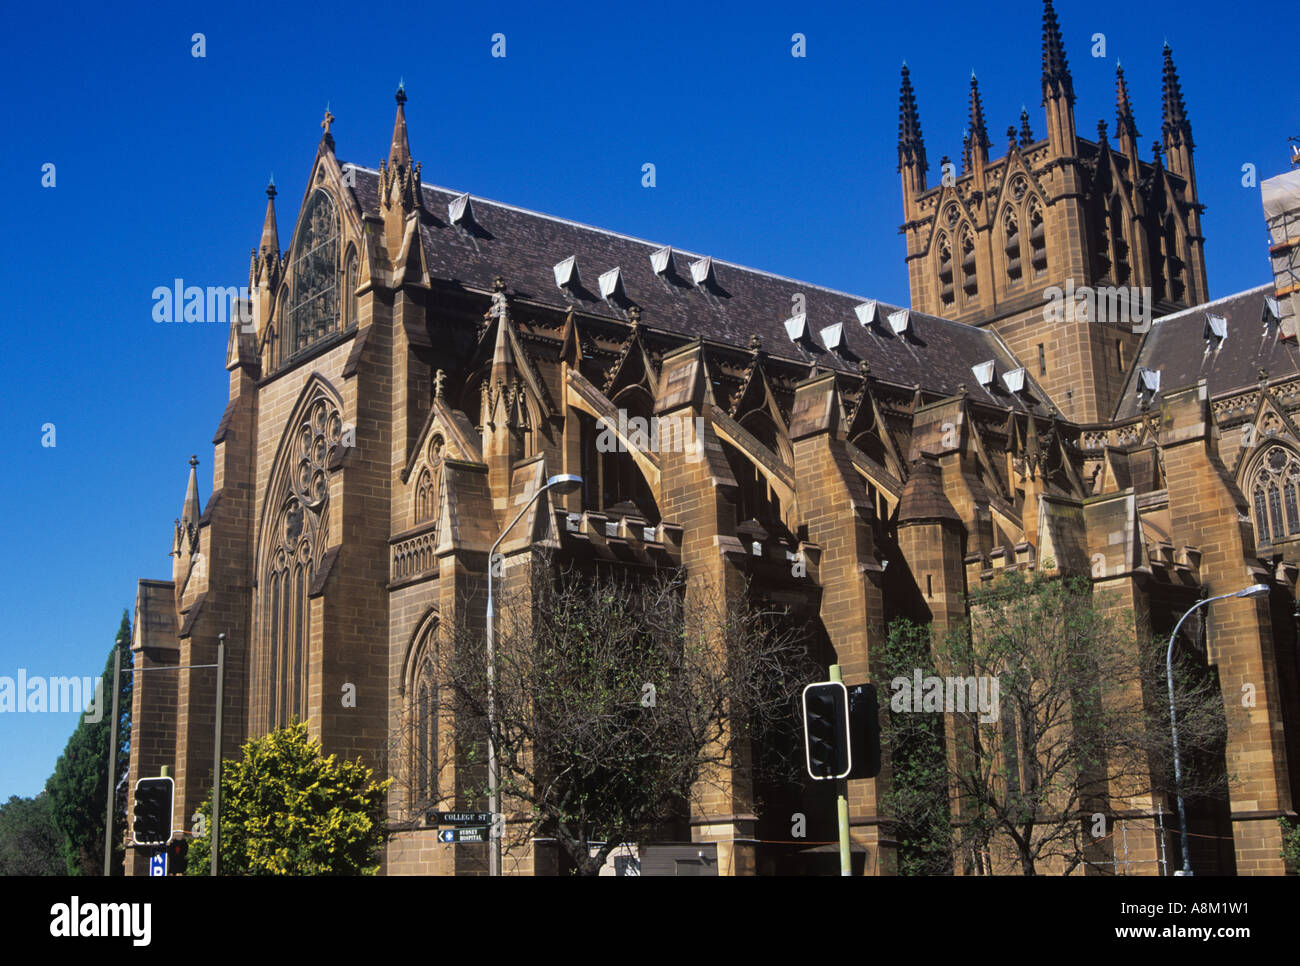 St Mary`s Catholic cathedral in Sydney, foundation stone laid by Governor Macquarie 1821 - Stock Image